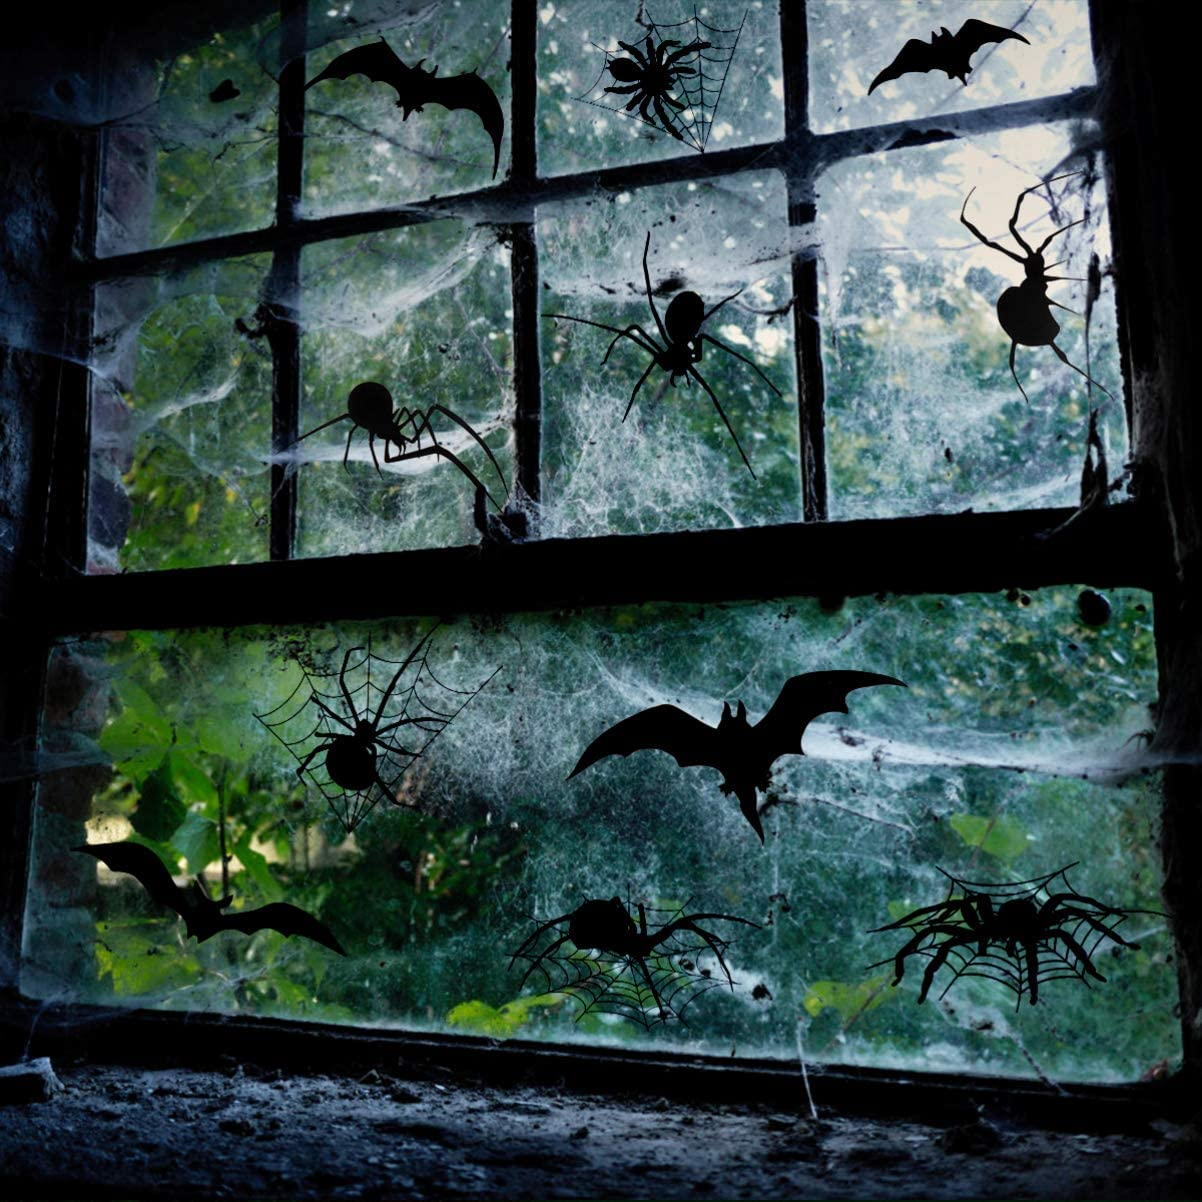 Halloween Window Clings Scary Window Stickers Party Window Decals Decorations for Halloween Party 10 Sheets